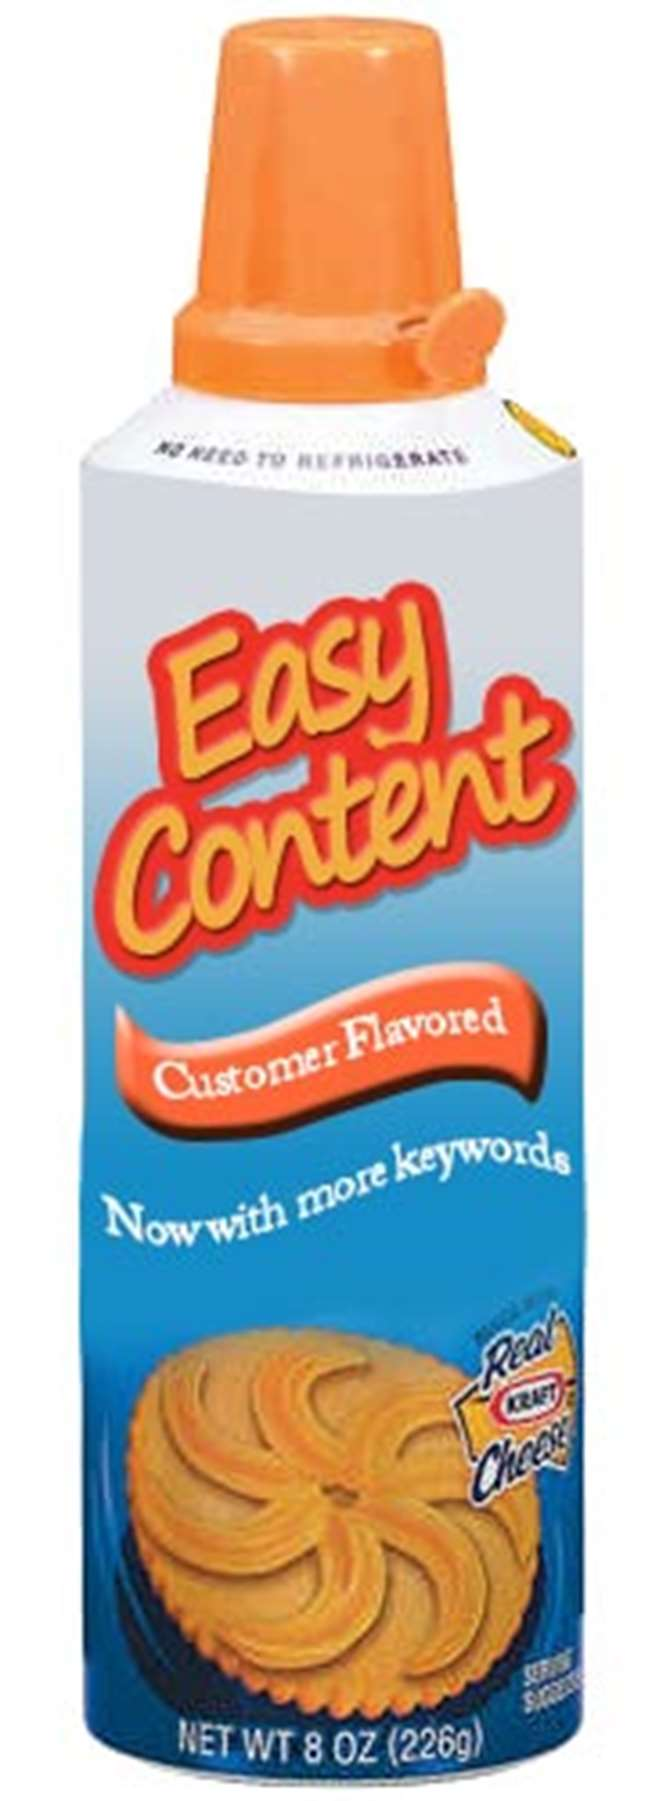 Easy Content can. Not affilated or endorsed by Kraft Foods